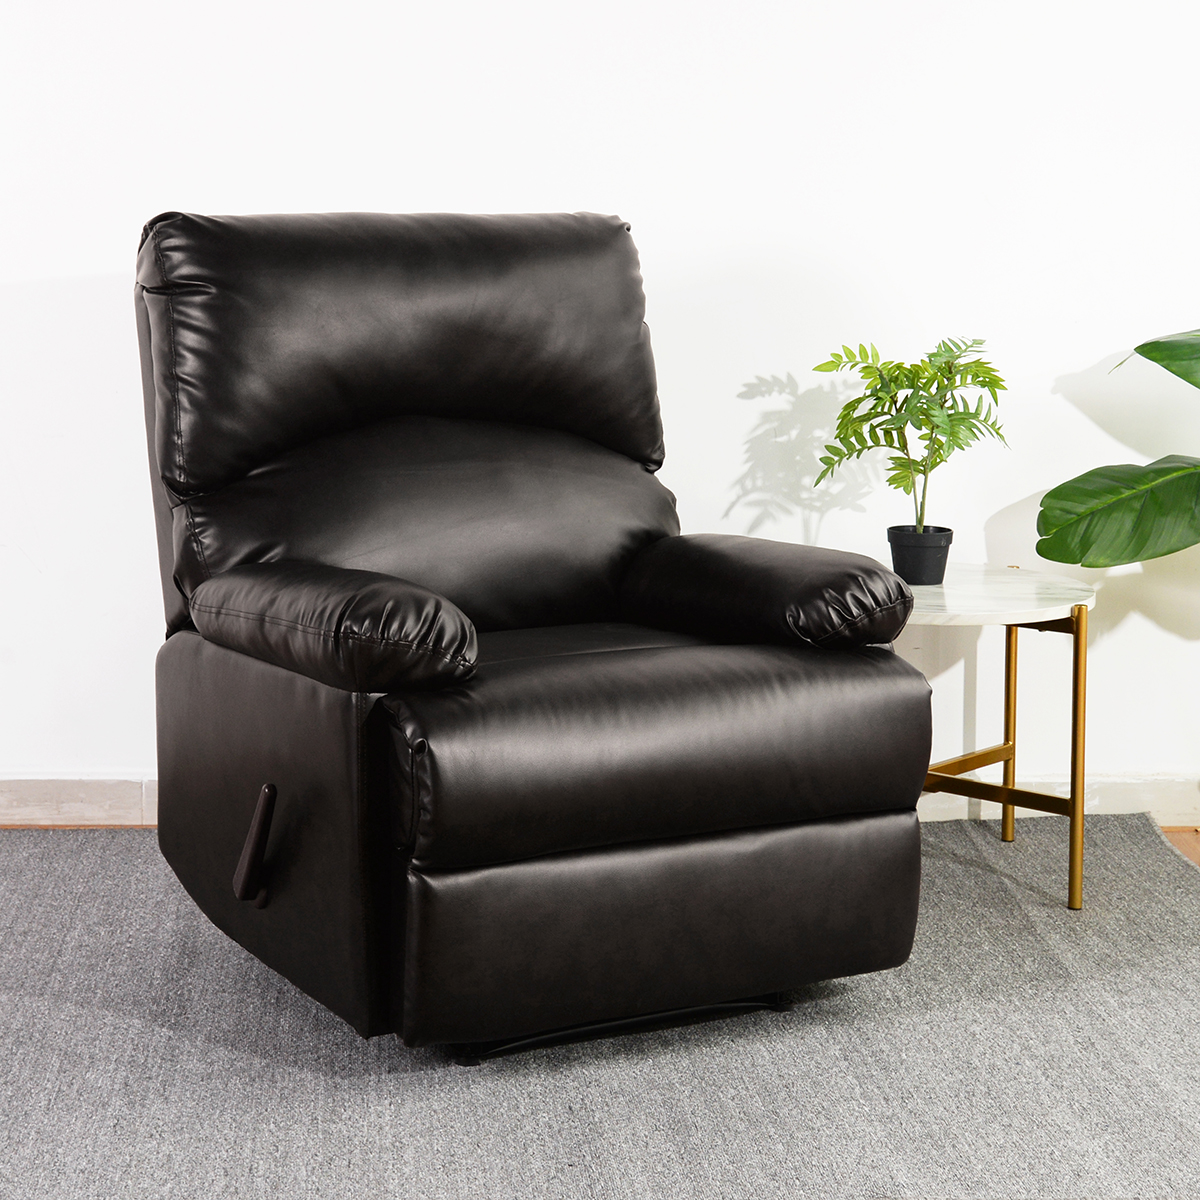 Details About Modern Leather Recliner Chair Manual Single Couch Heavy Duty Sofa Lounge